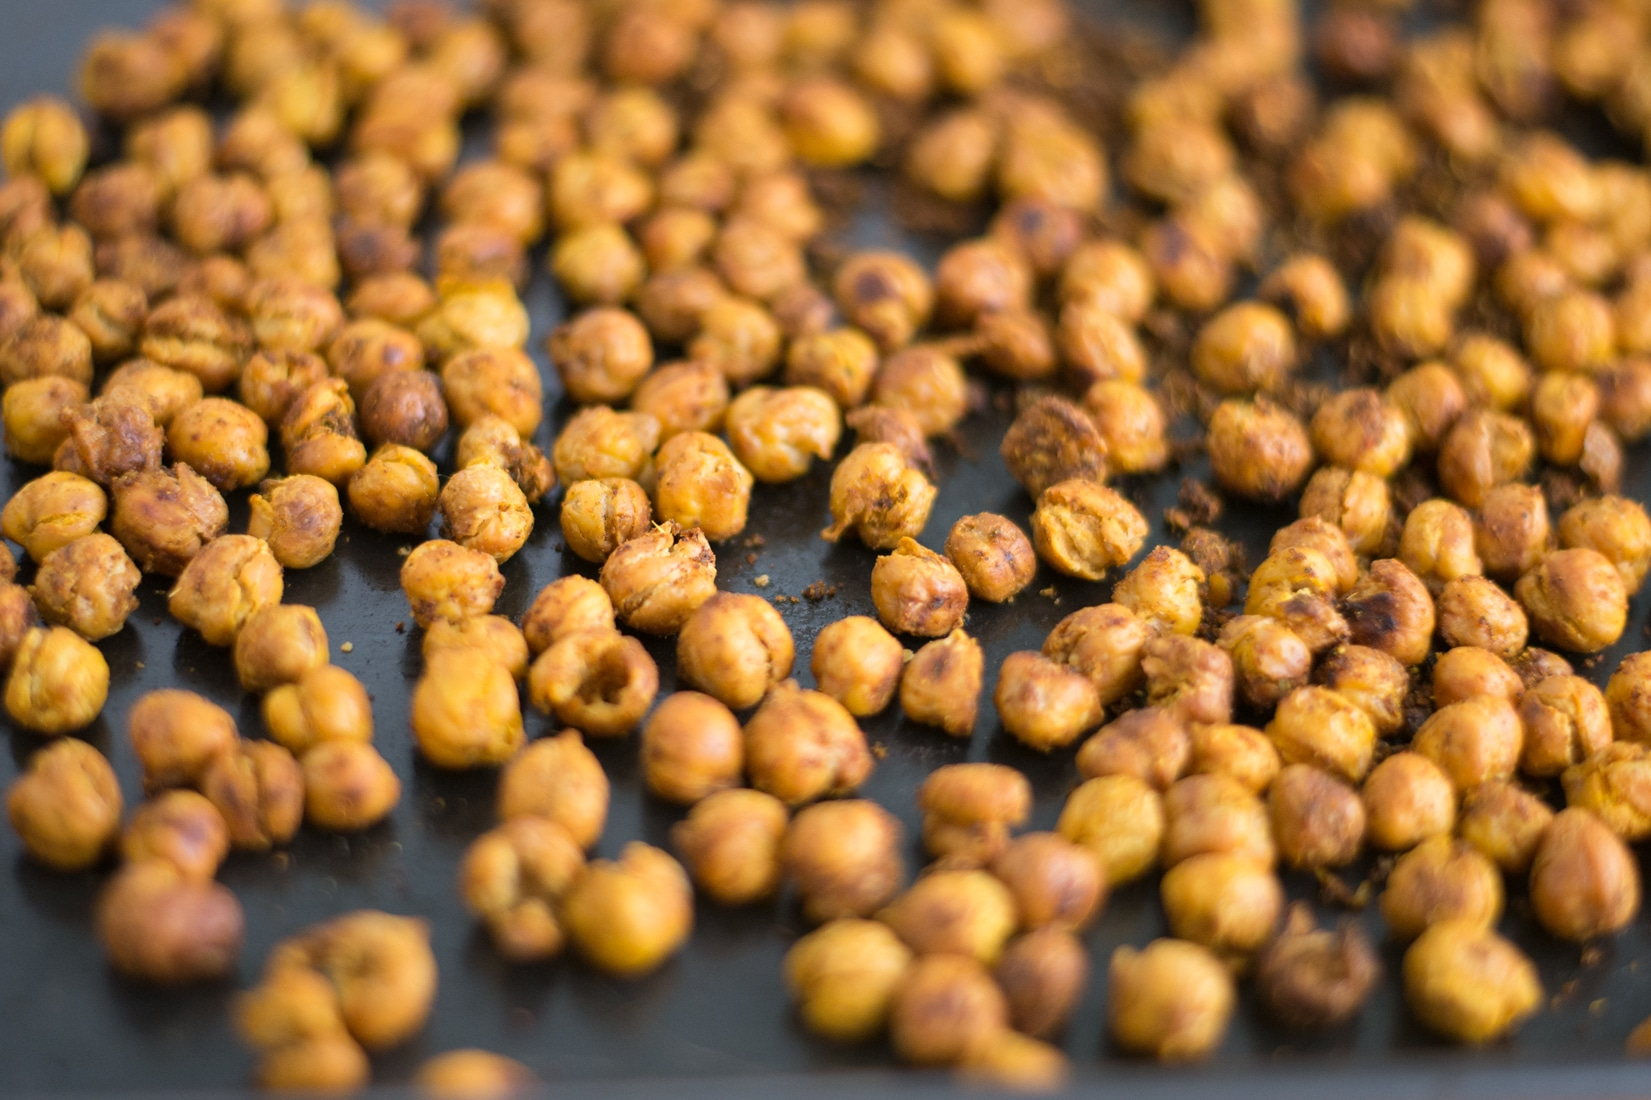 baking sheet of roasted chickpeas